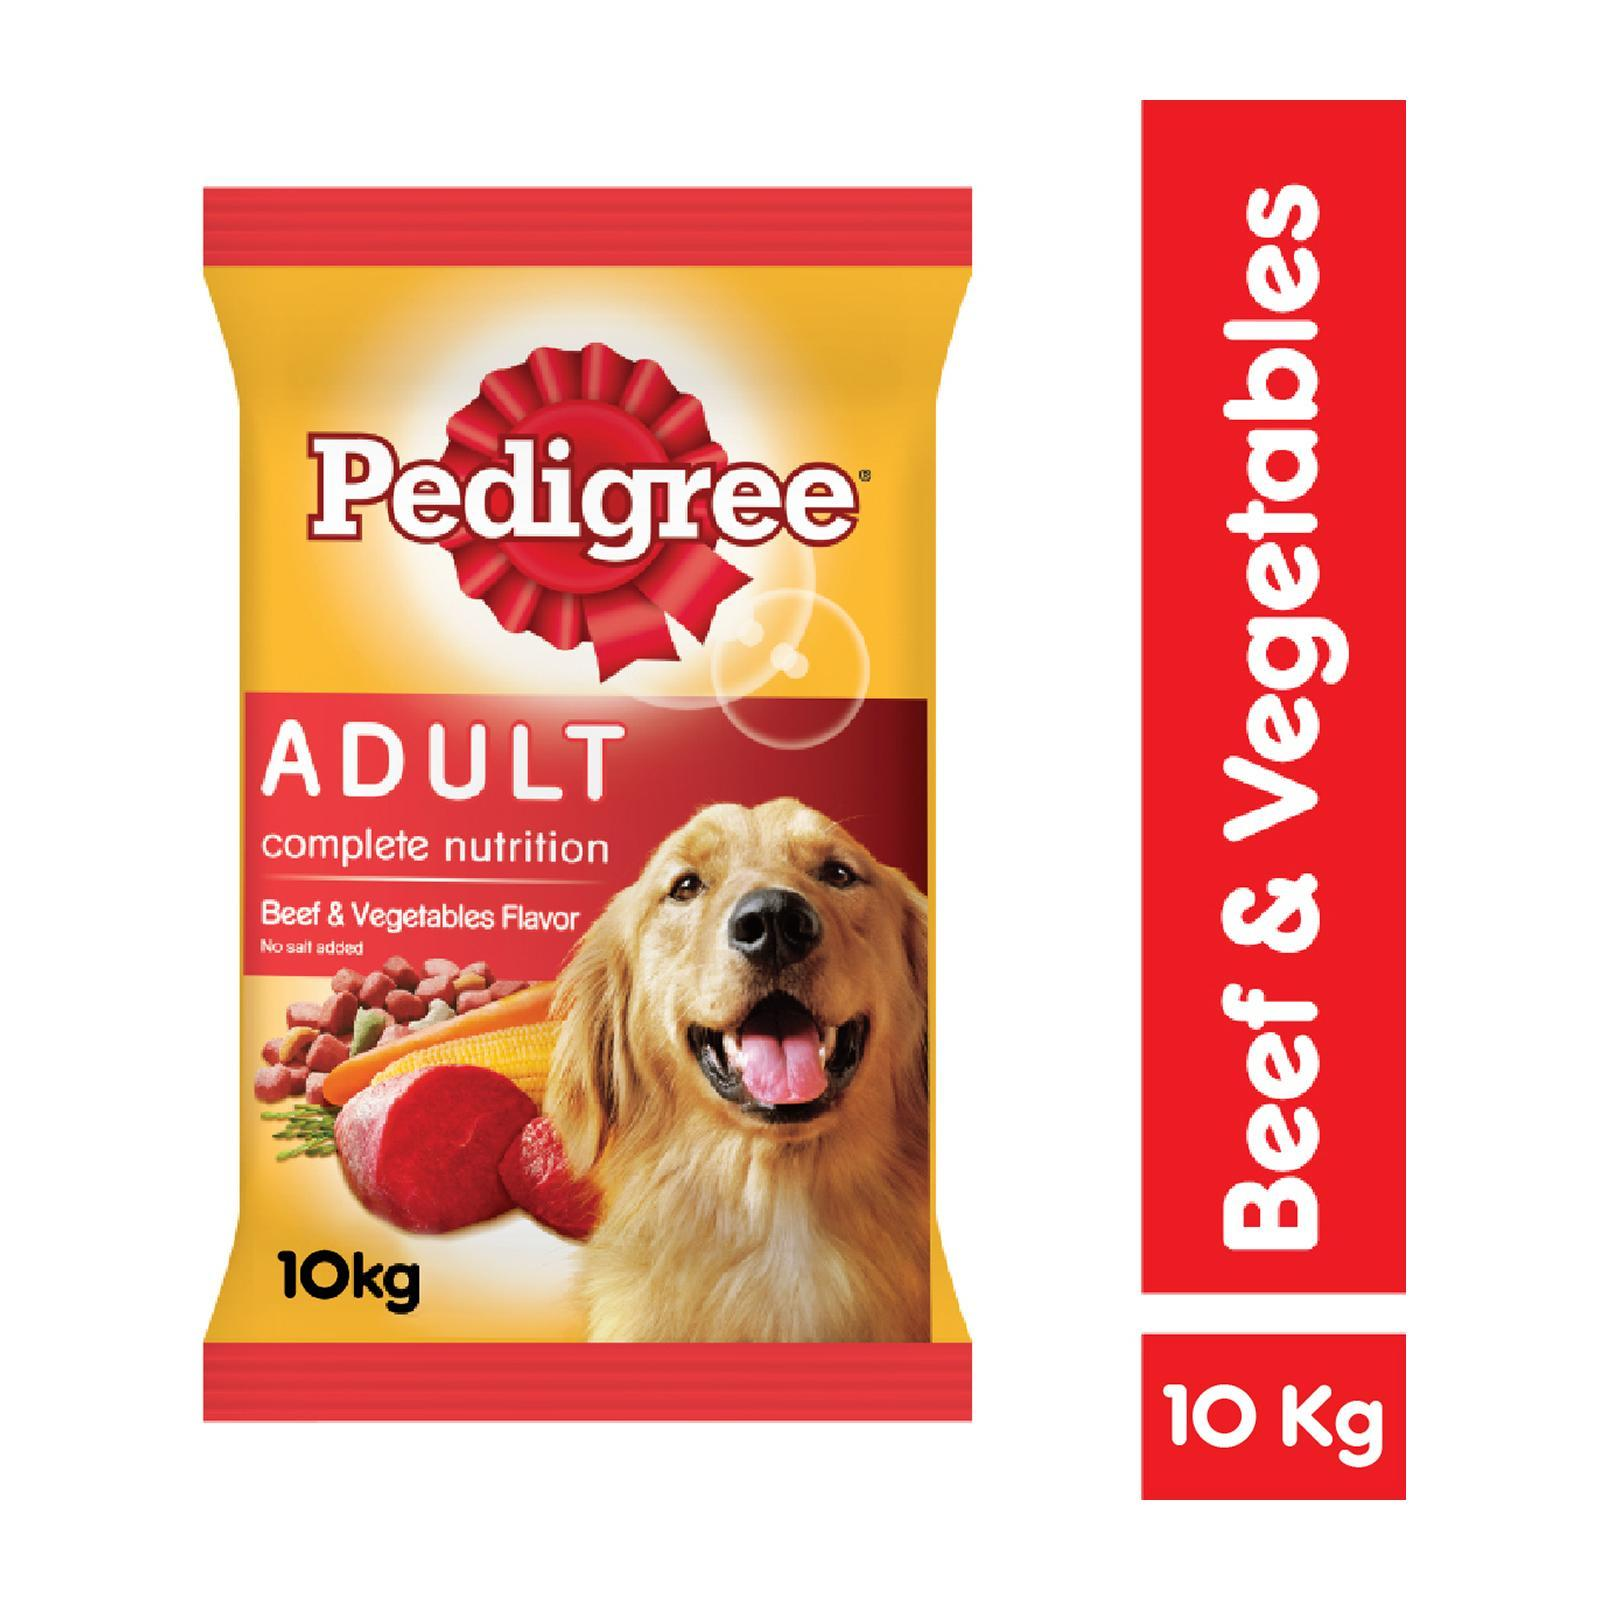 Pedigree Adult Complete Nutrition Beef and Vegetable Dry Dog Food